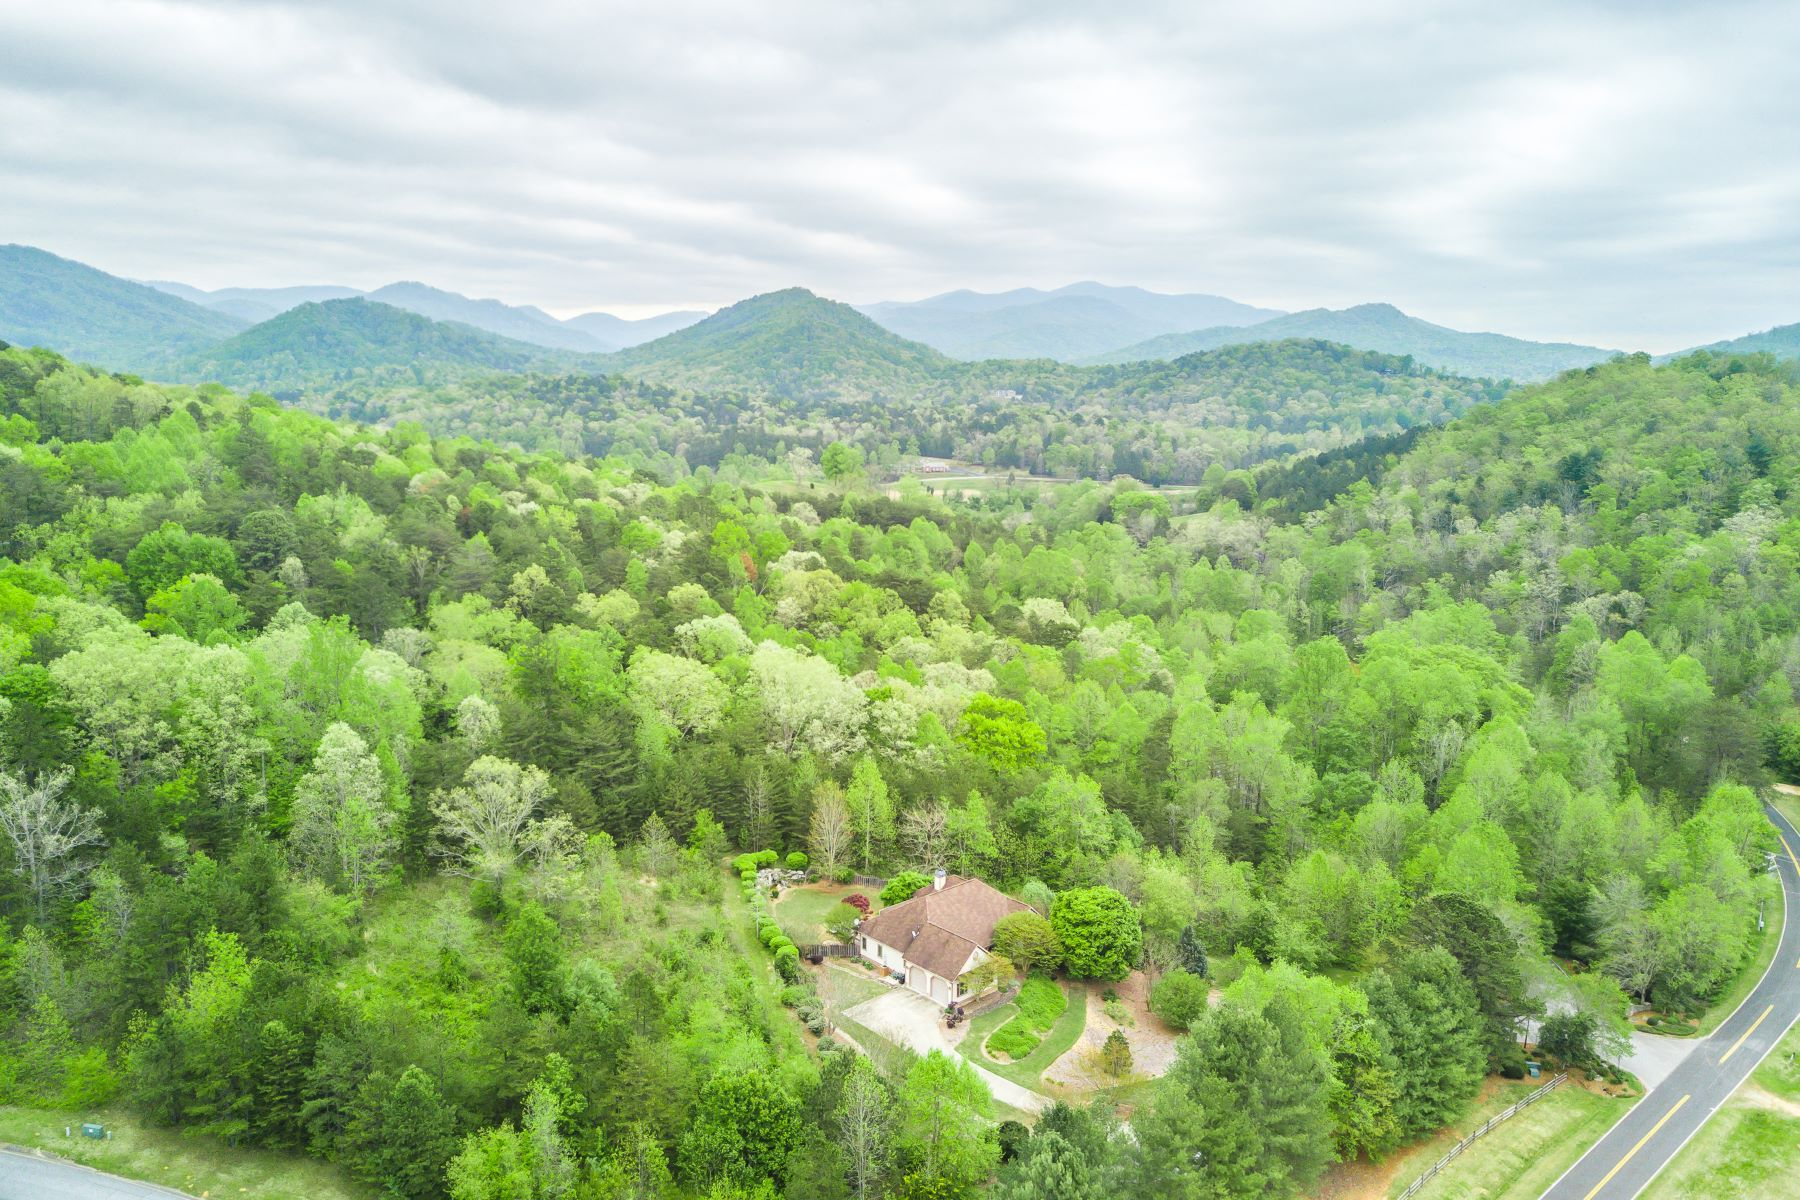 Single Family Homes for Sale at 2 Foxboro Road 2 Foxoboro Road Travelers Rest, South Carolina 29690 United States